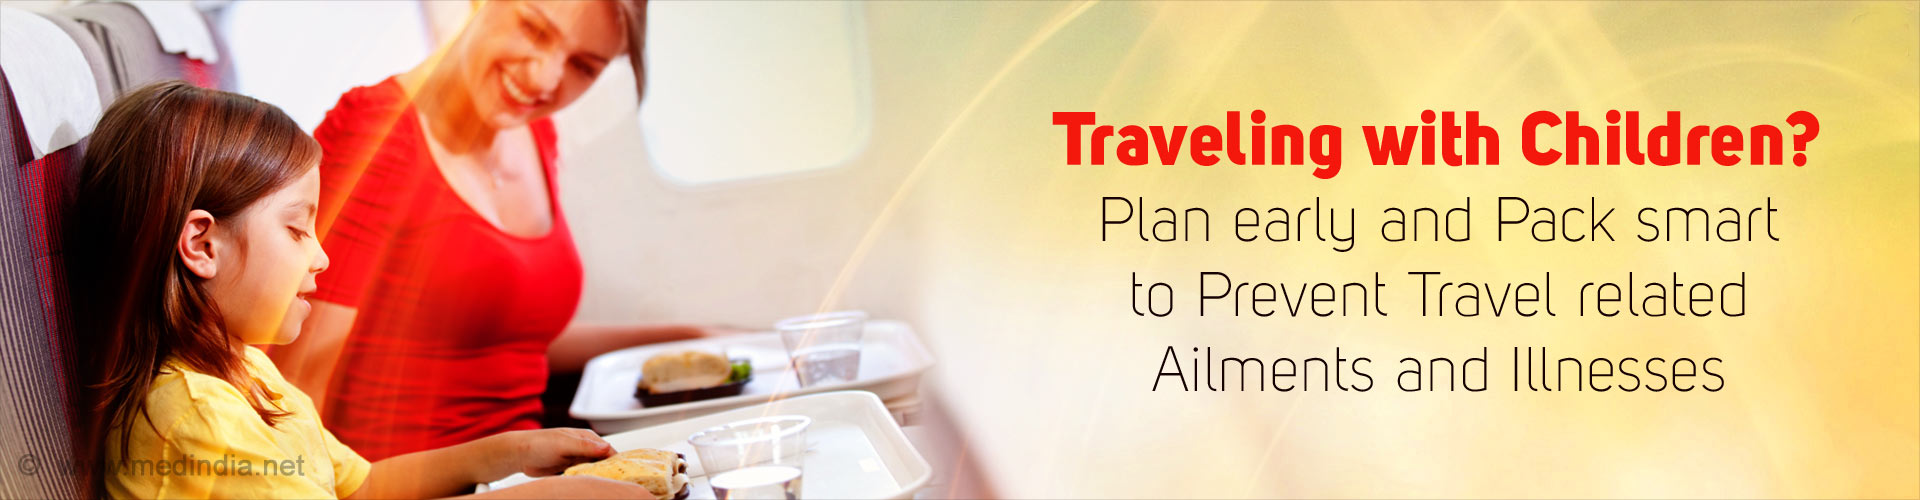 Traveling with Children? Plan early and Pack smart to Prevent Travel related Ailments and Illnesses